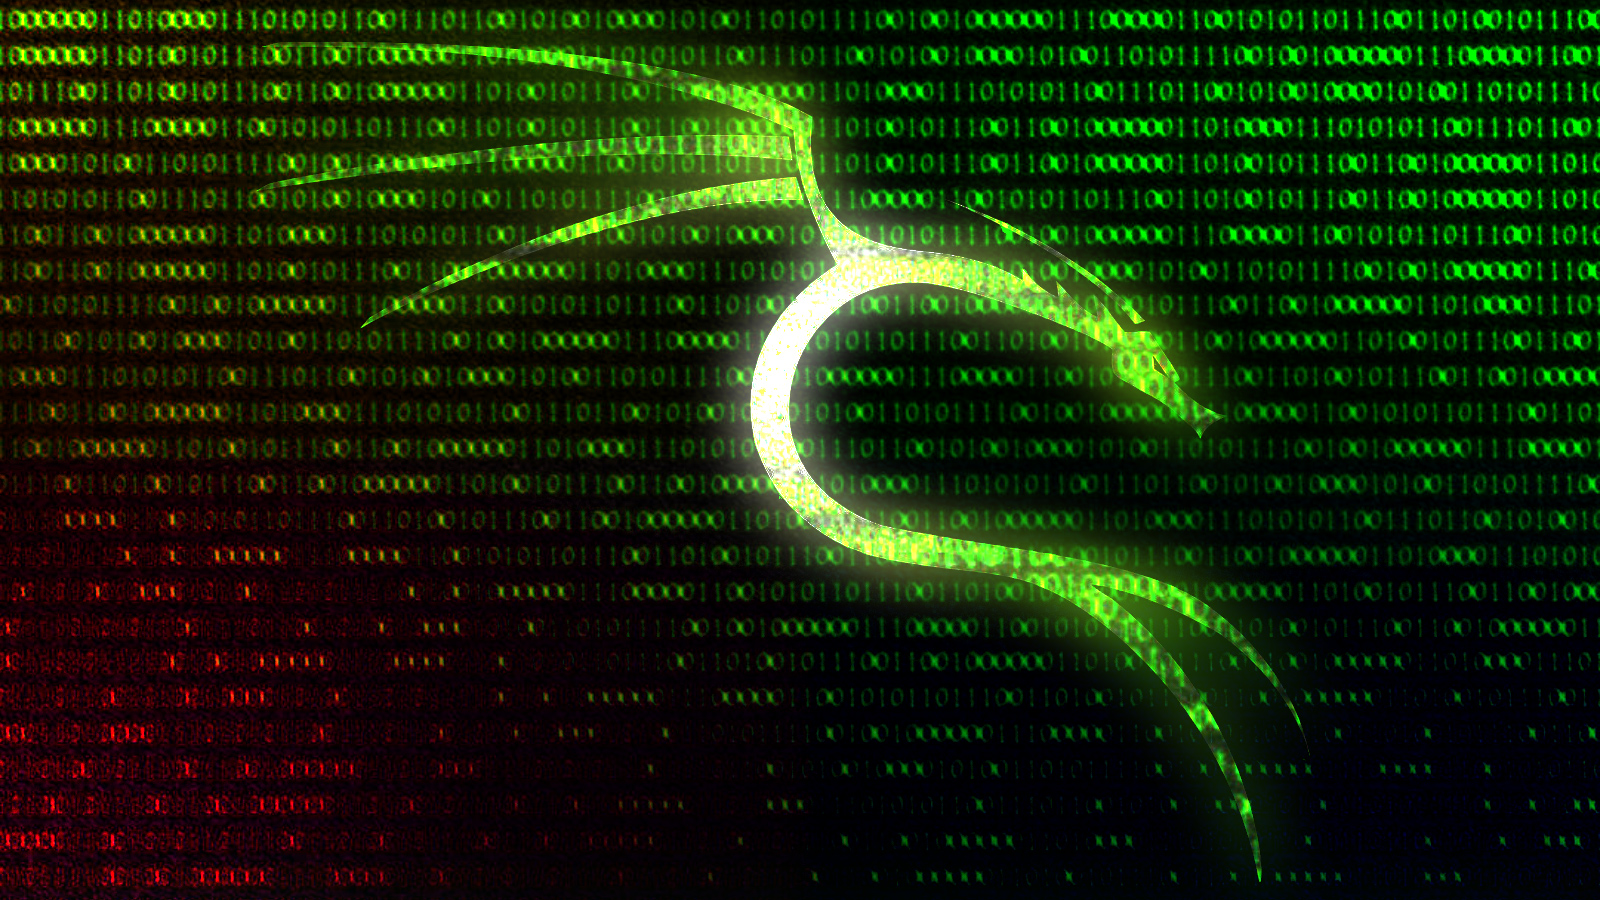 bleachbit download for kali linux